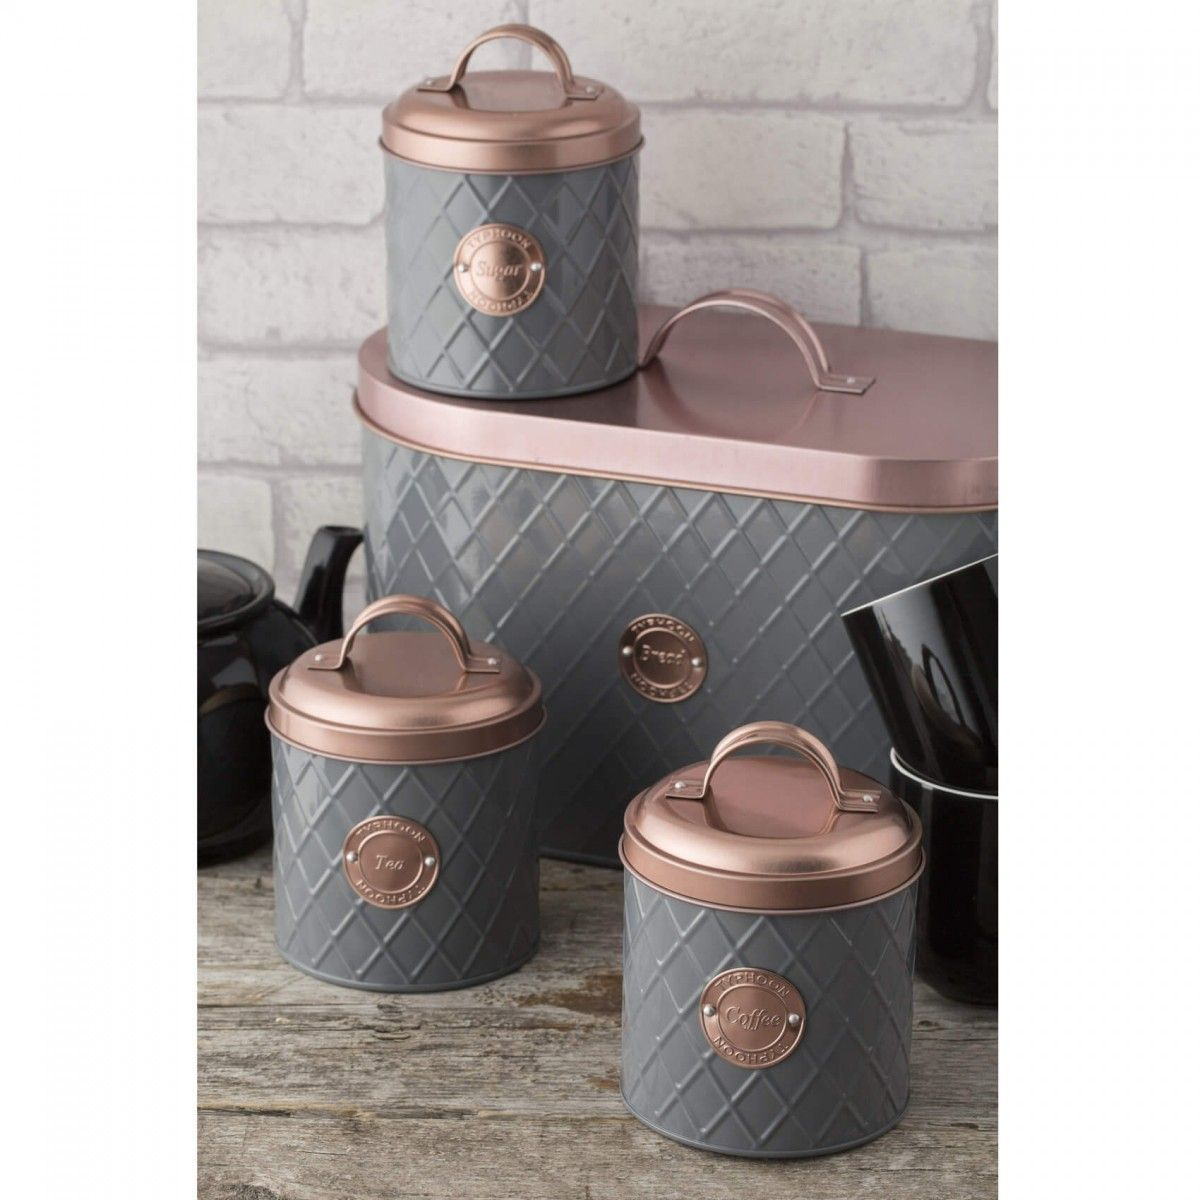 Typhoon Living Copper Lid Tea Coffee Sugar Canisters Bread Bins Grey Kitchen Worktop Storage Collection